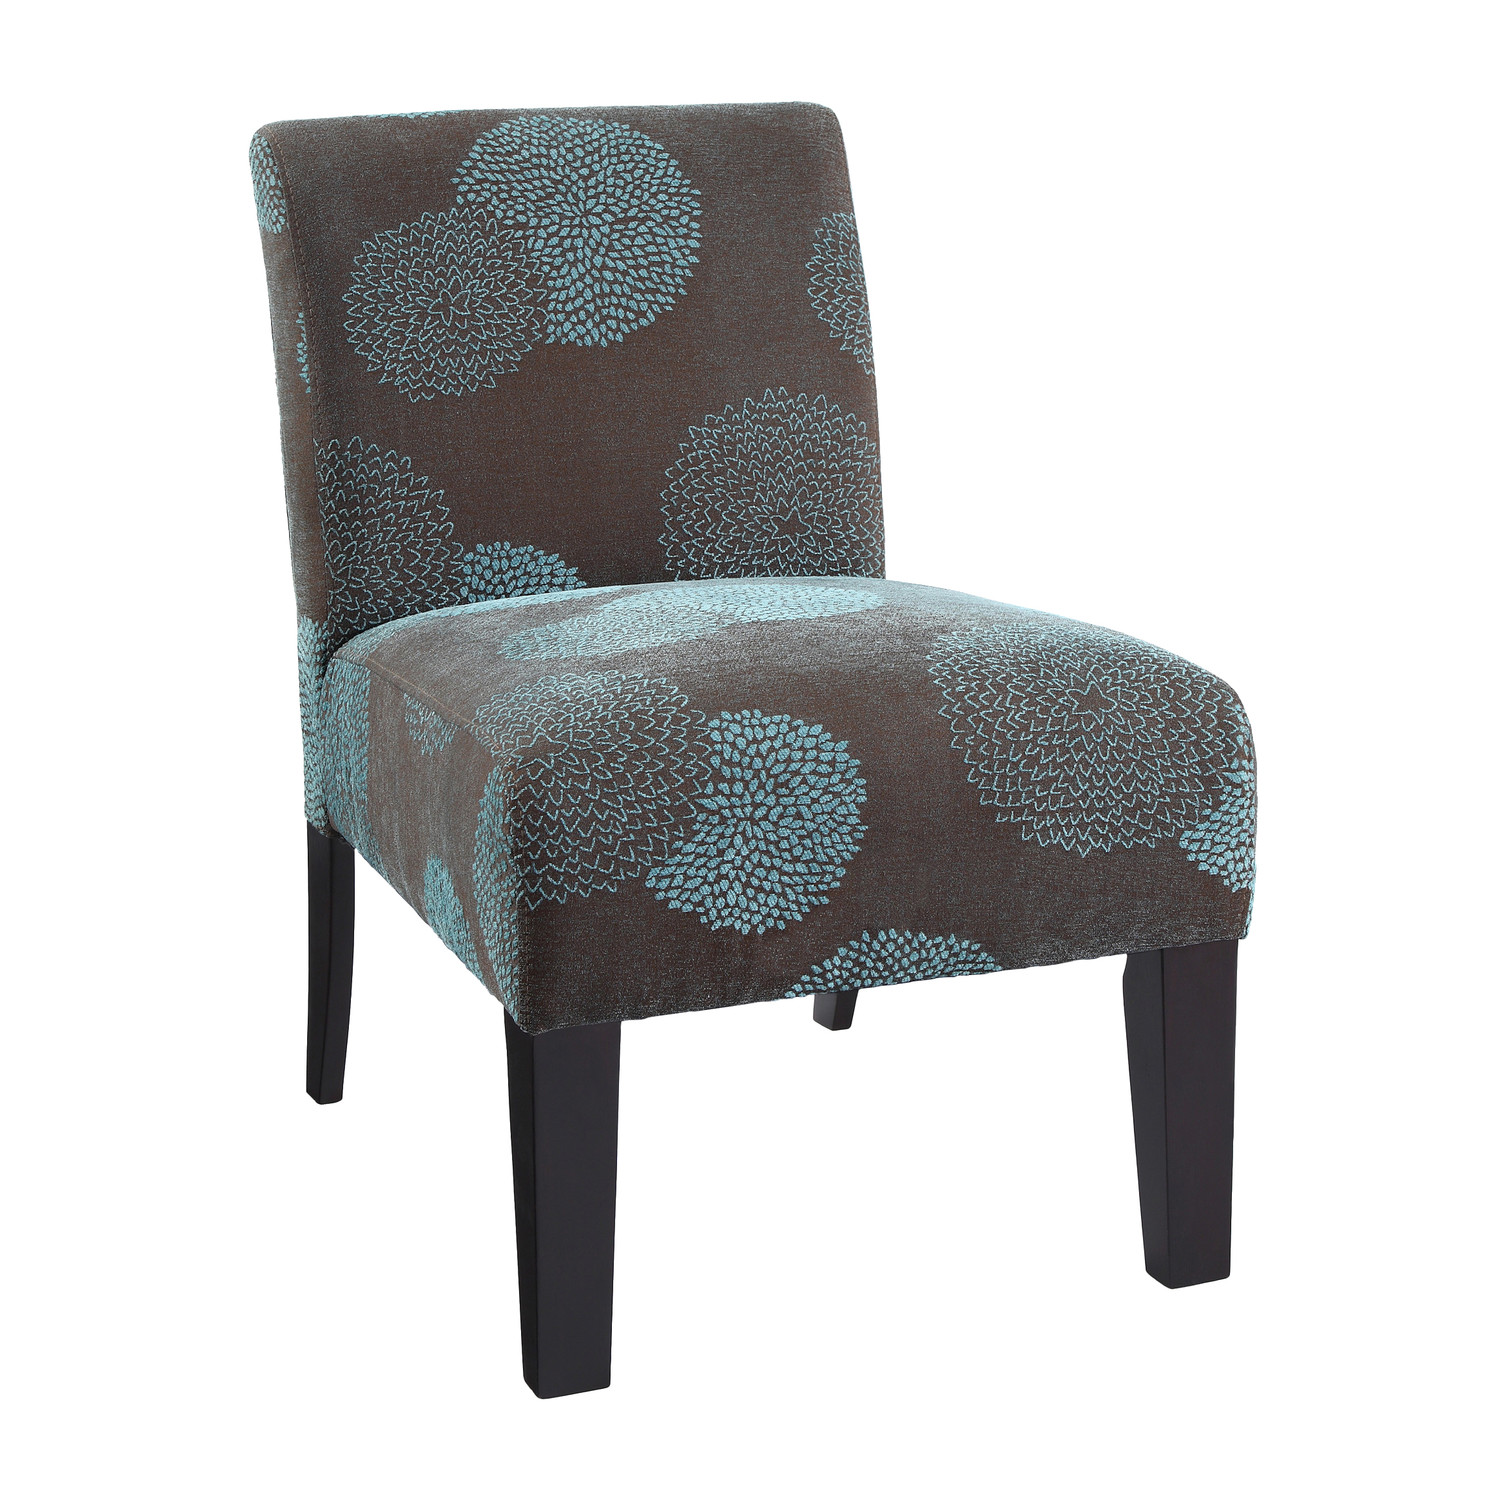 Chair Furniture: Cool Accent Chairs